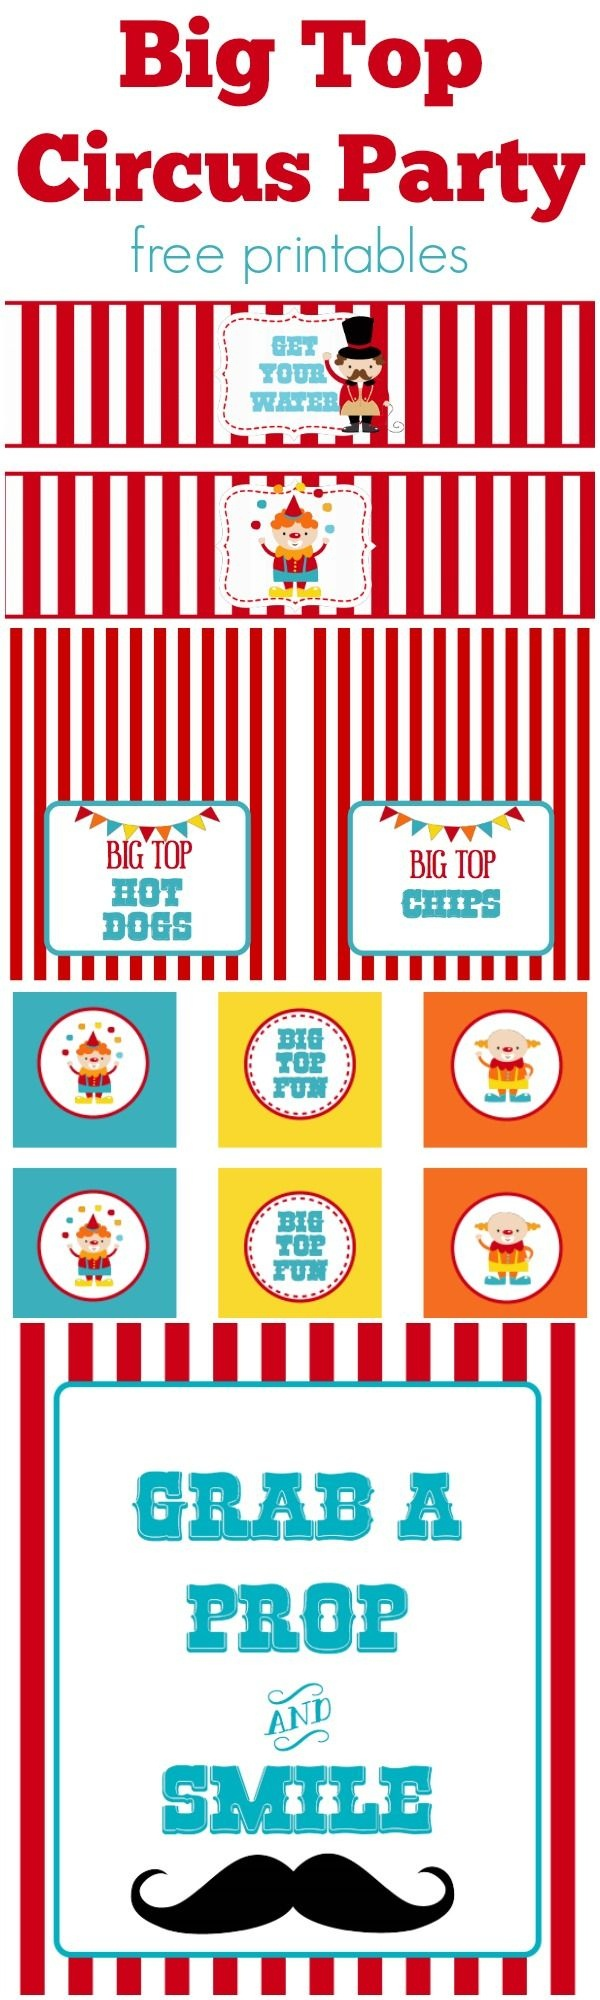 Circus Party | Free Printables | Free Printables | Circus Party - Free Printable Carnival Decorations